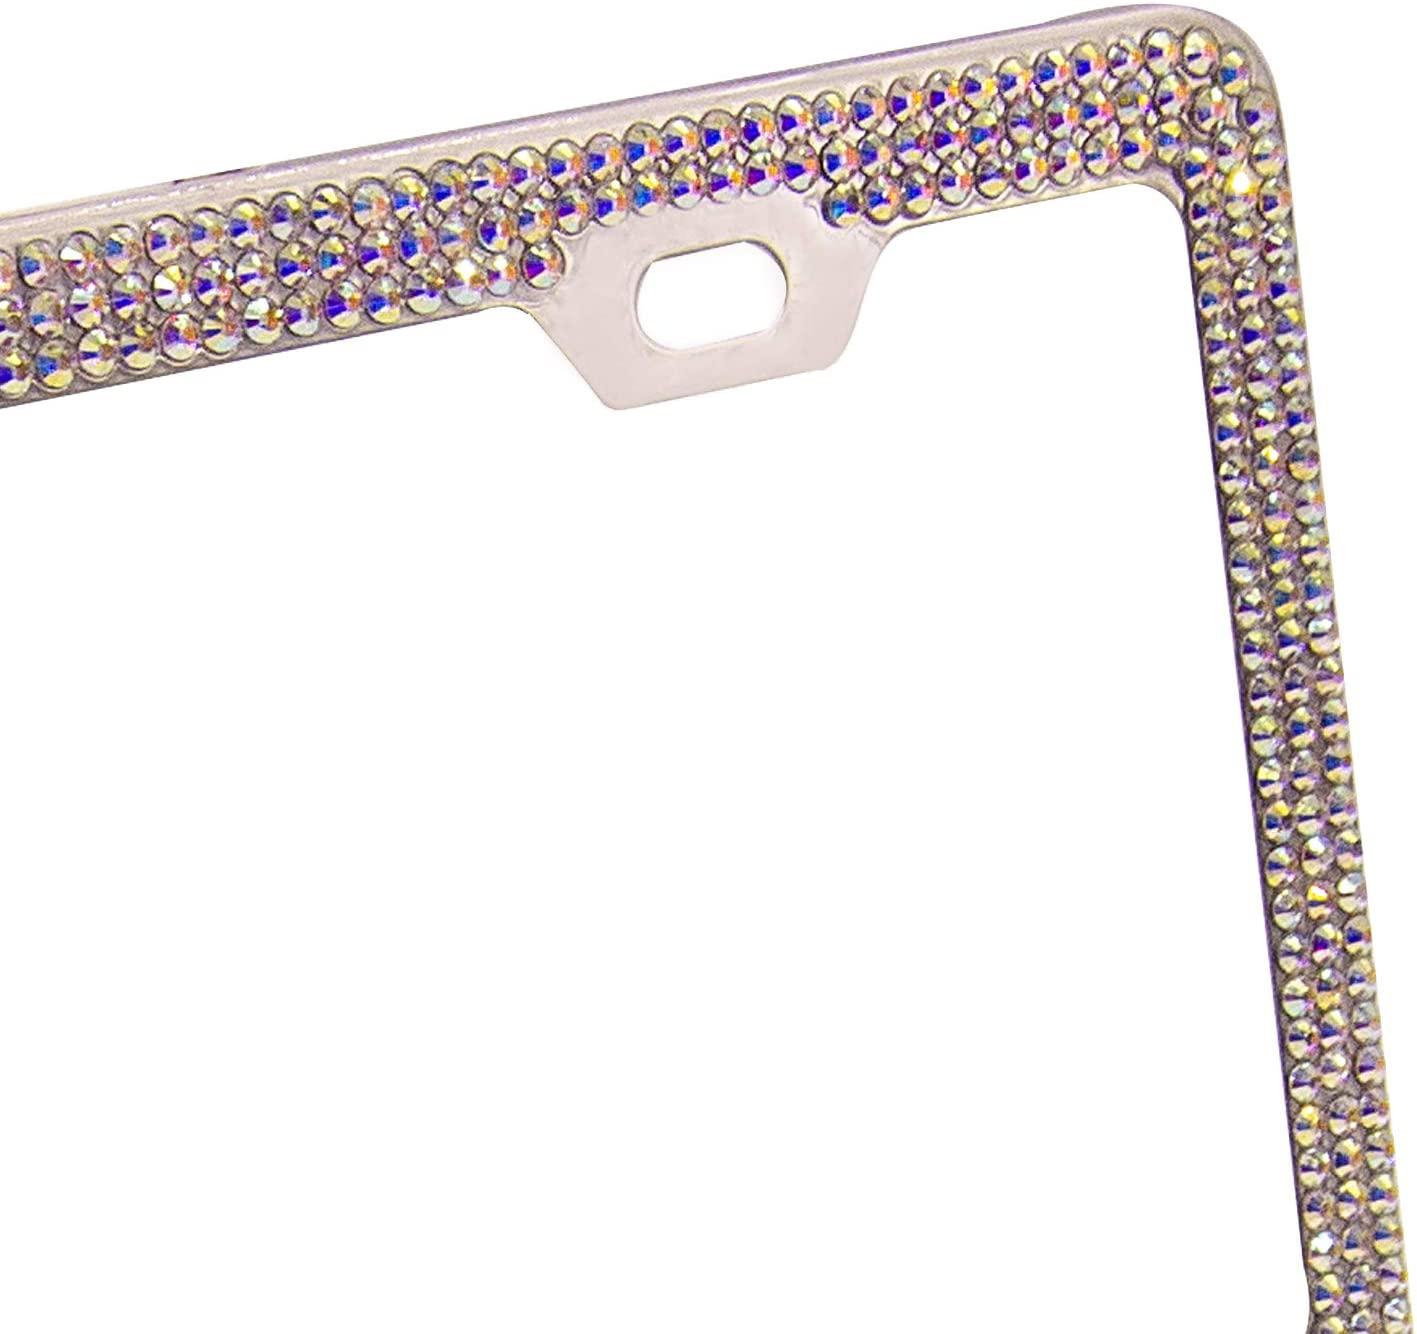 AB N//C License Plate Frame with Diamond Bling Rhinestones Stainless Steel with 2 Square Holes Sparkly Shiny Waterproof Handcrafted Crystal 2 Pack in 1 Luxury Gift Box